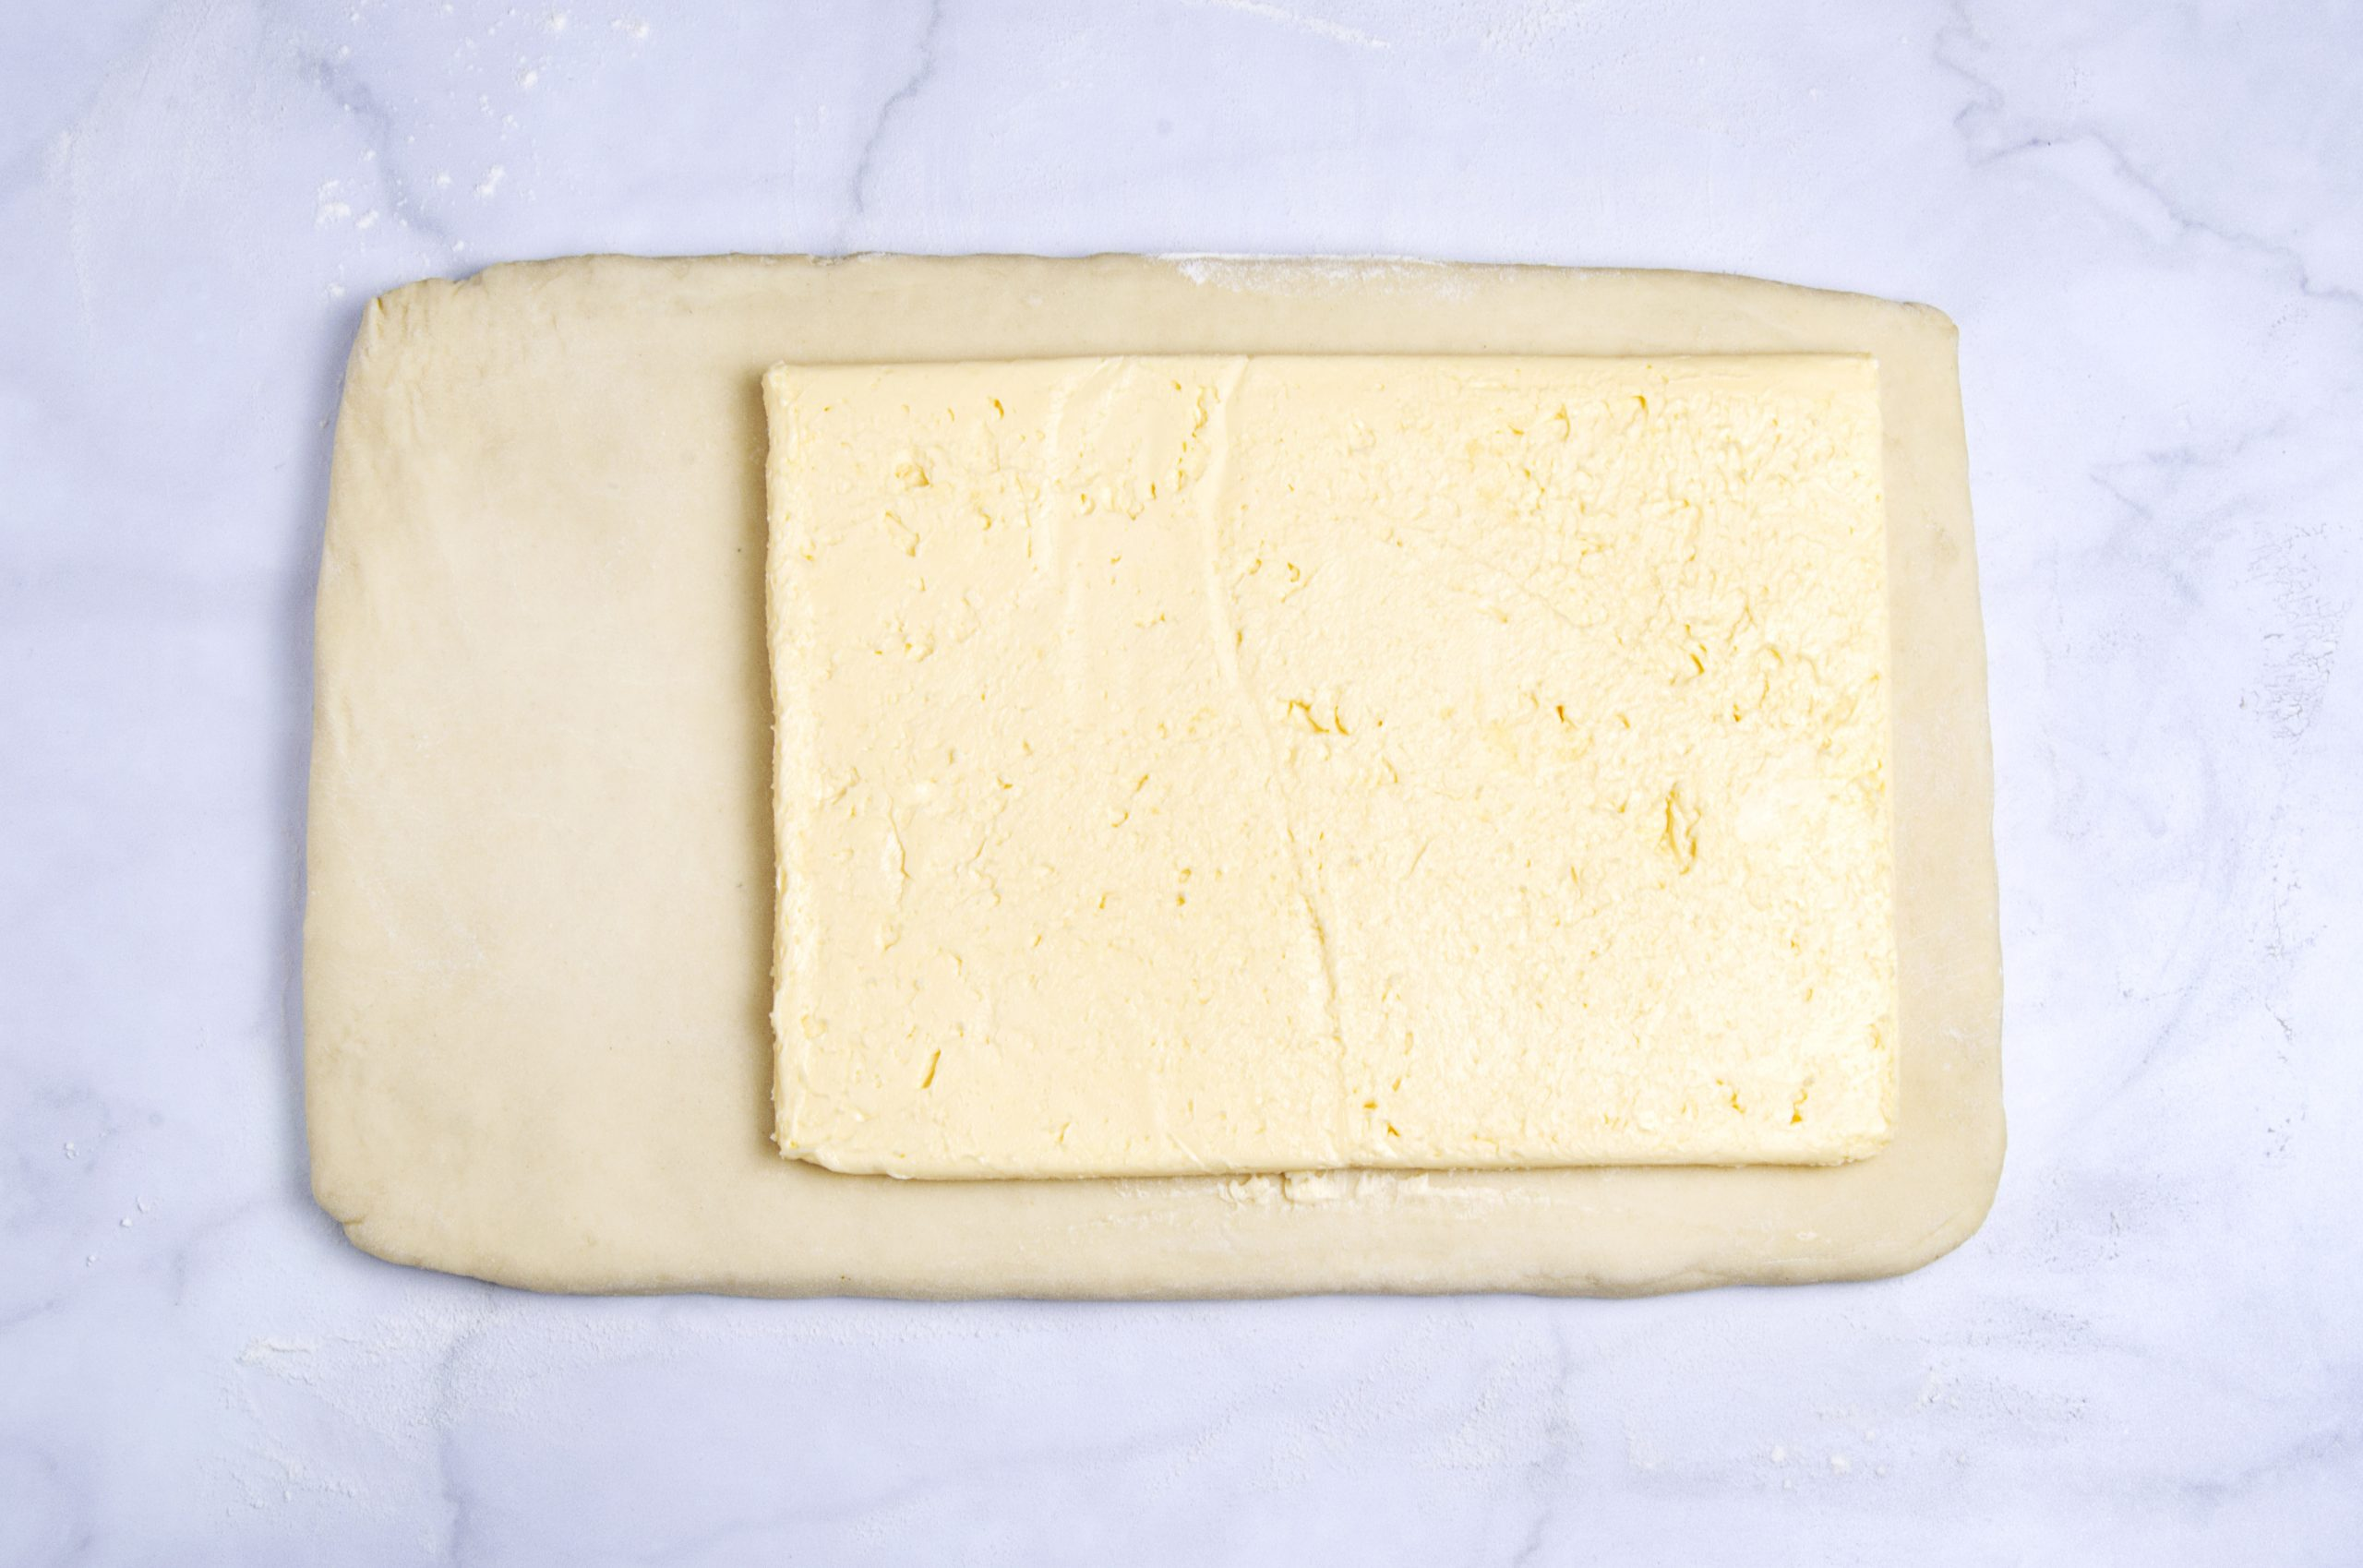 rectangle of croissant dough with a block of butter on top